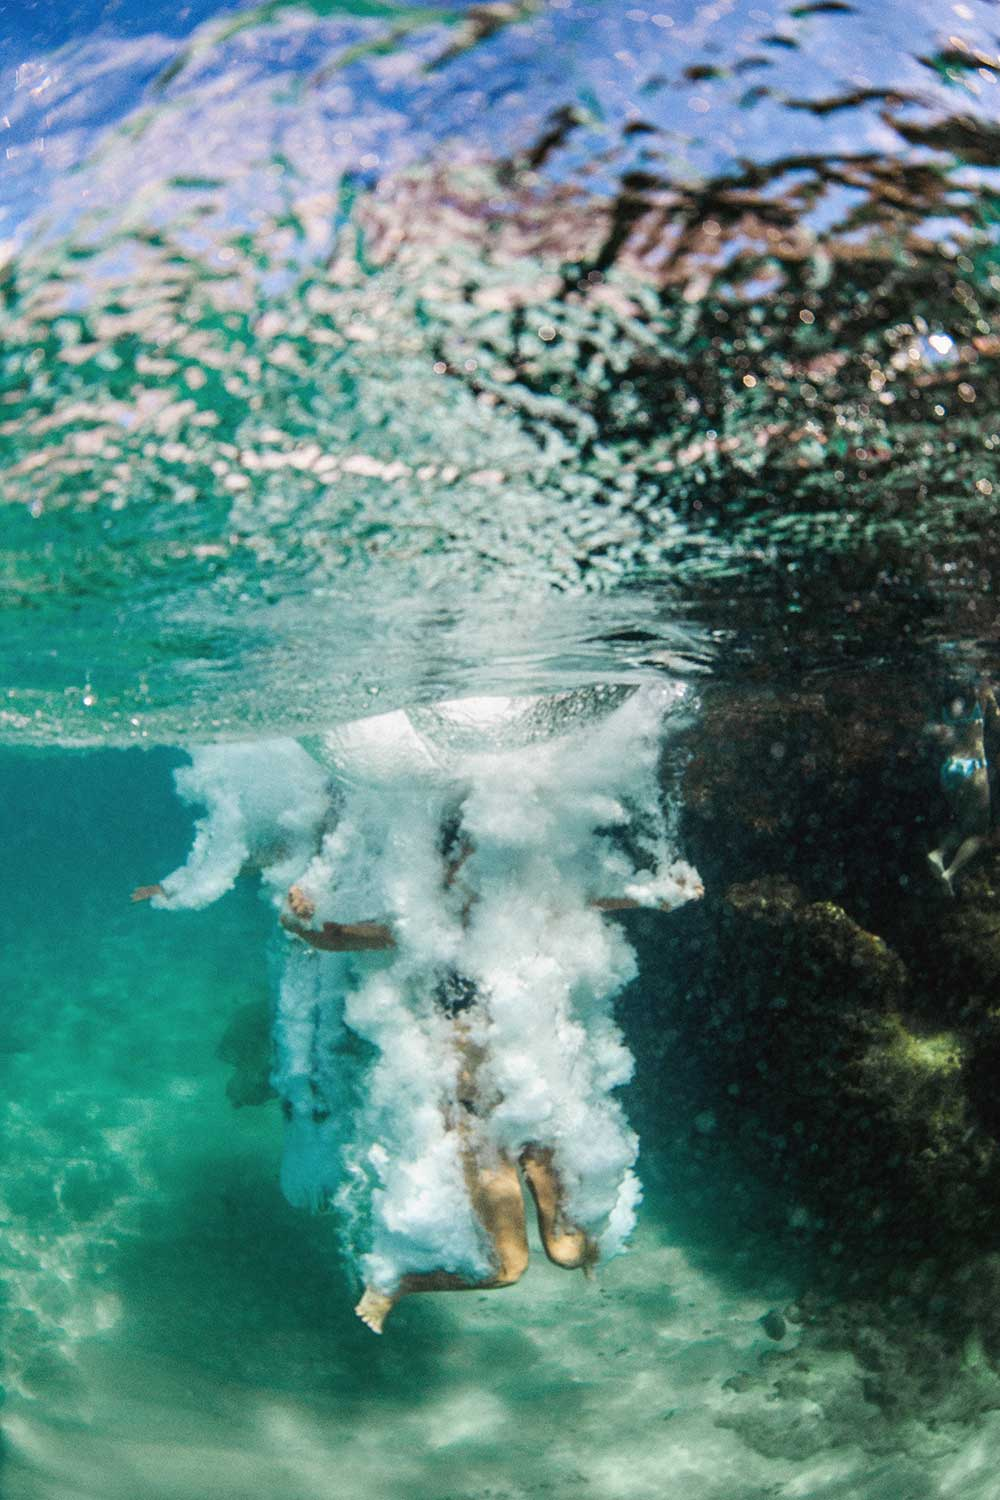 underwater photo of person who just jumped into ocean